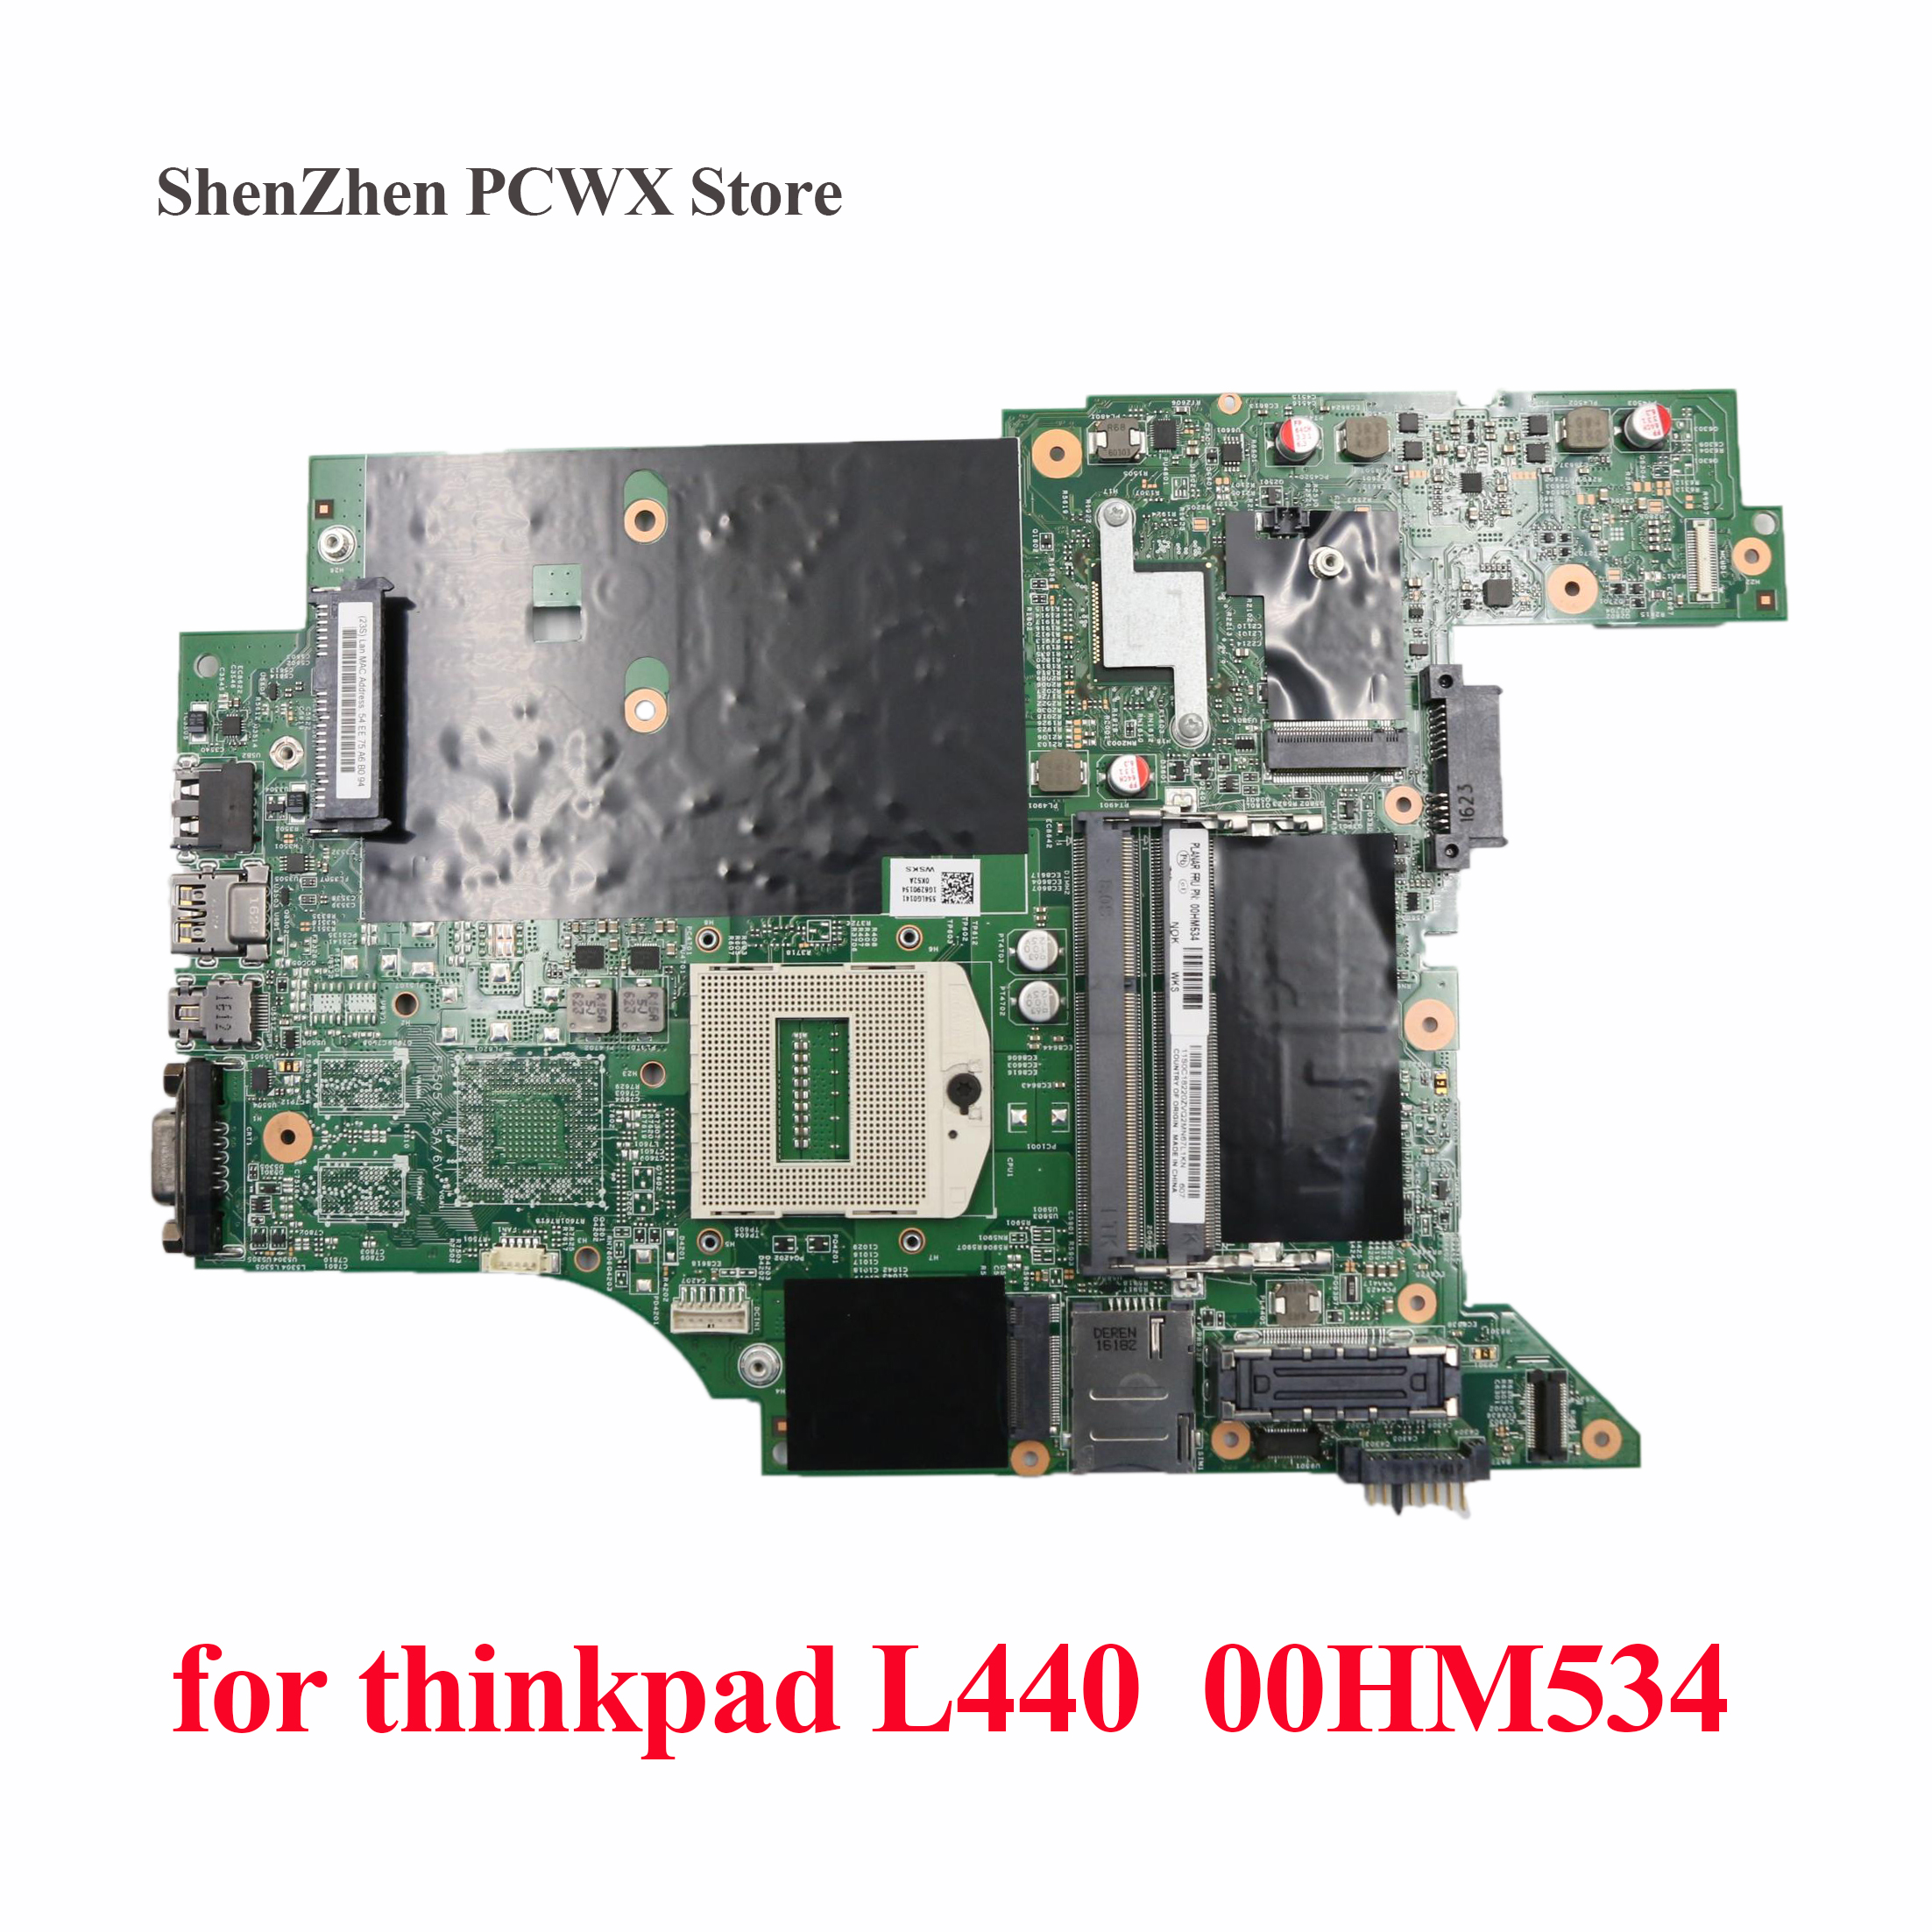 Integrated Motherboard for Lenovo ThinkPad L440 Computer Mainboard 00HM534 100% fully Tested Integrated Graphics Card